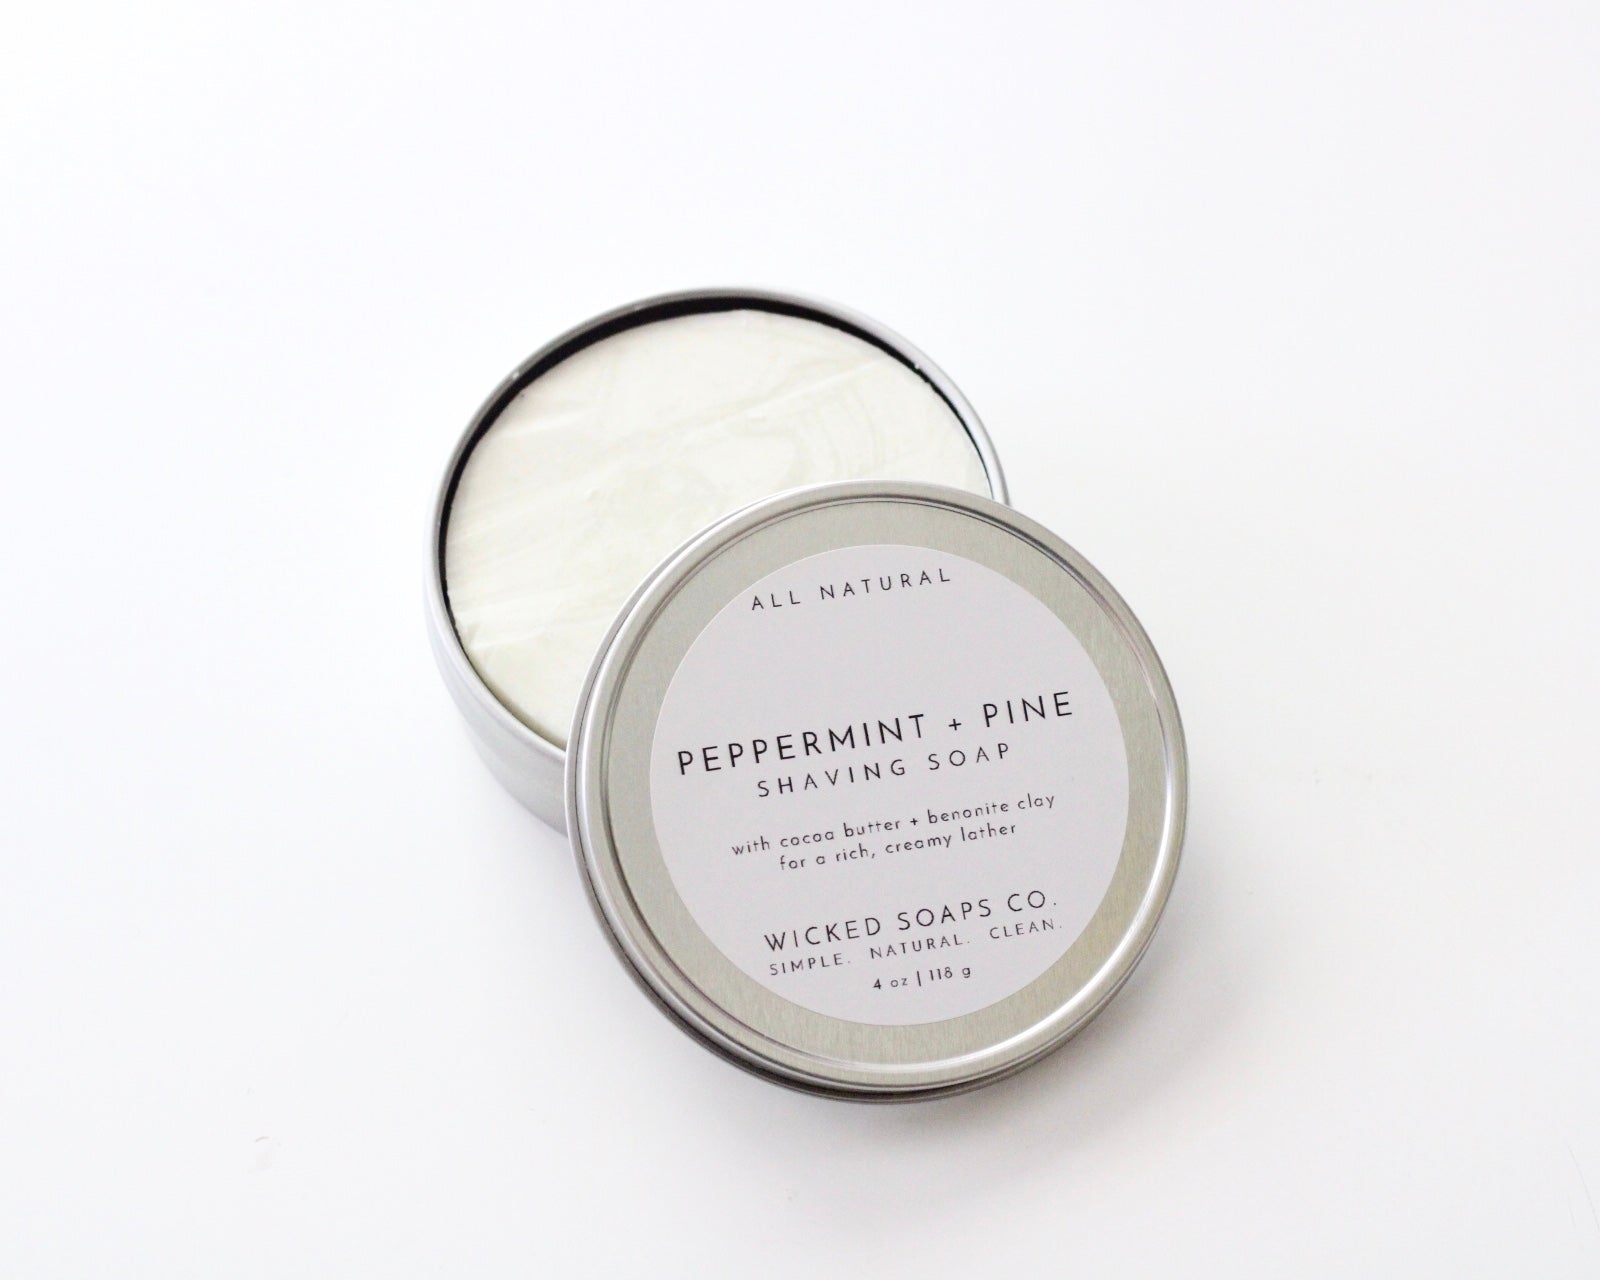 Peppermint + Pine Shaving Soap